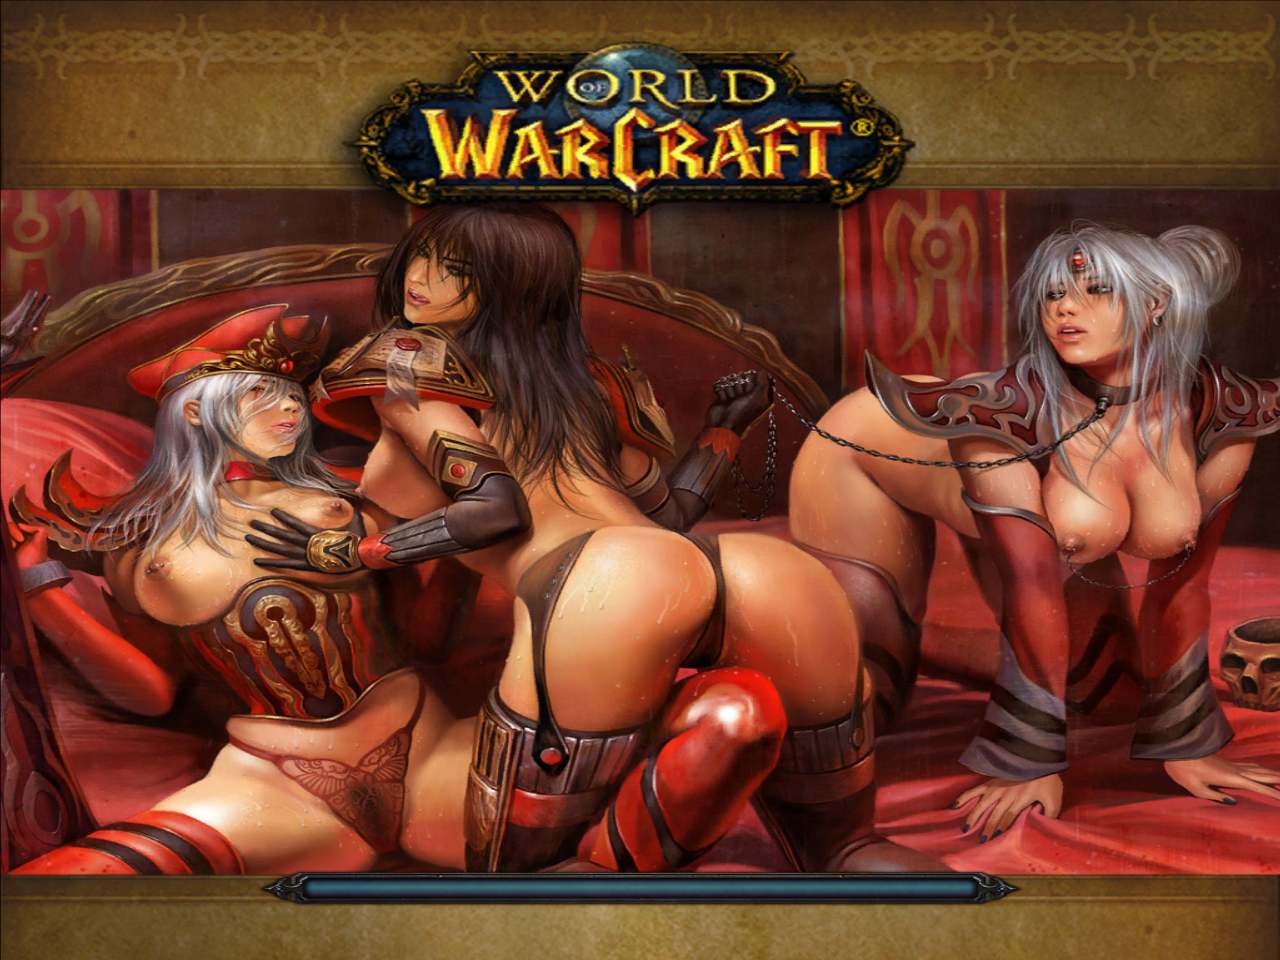 Warcraft nude skins having sex sex pics